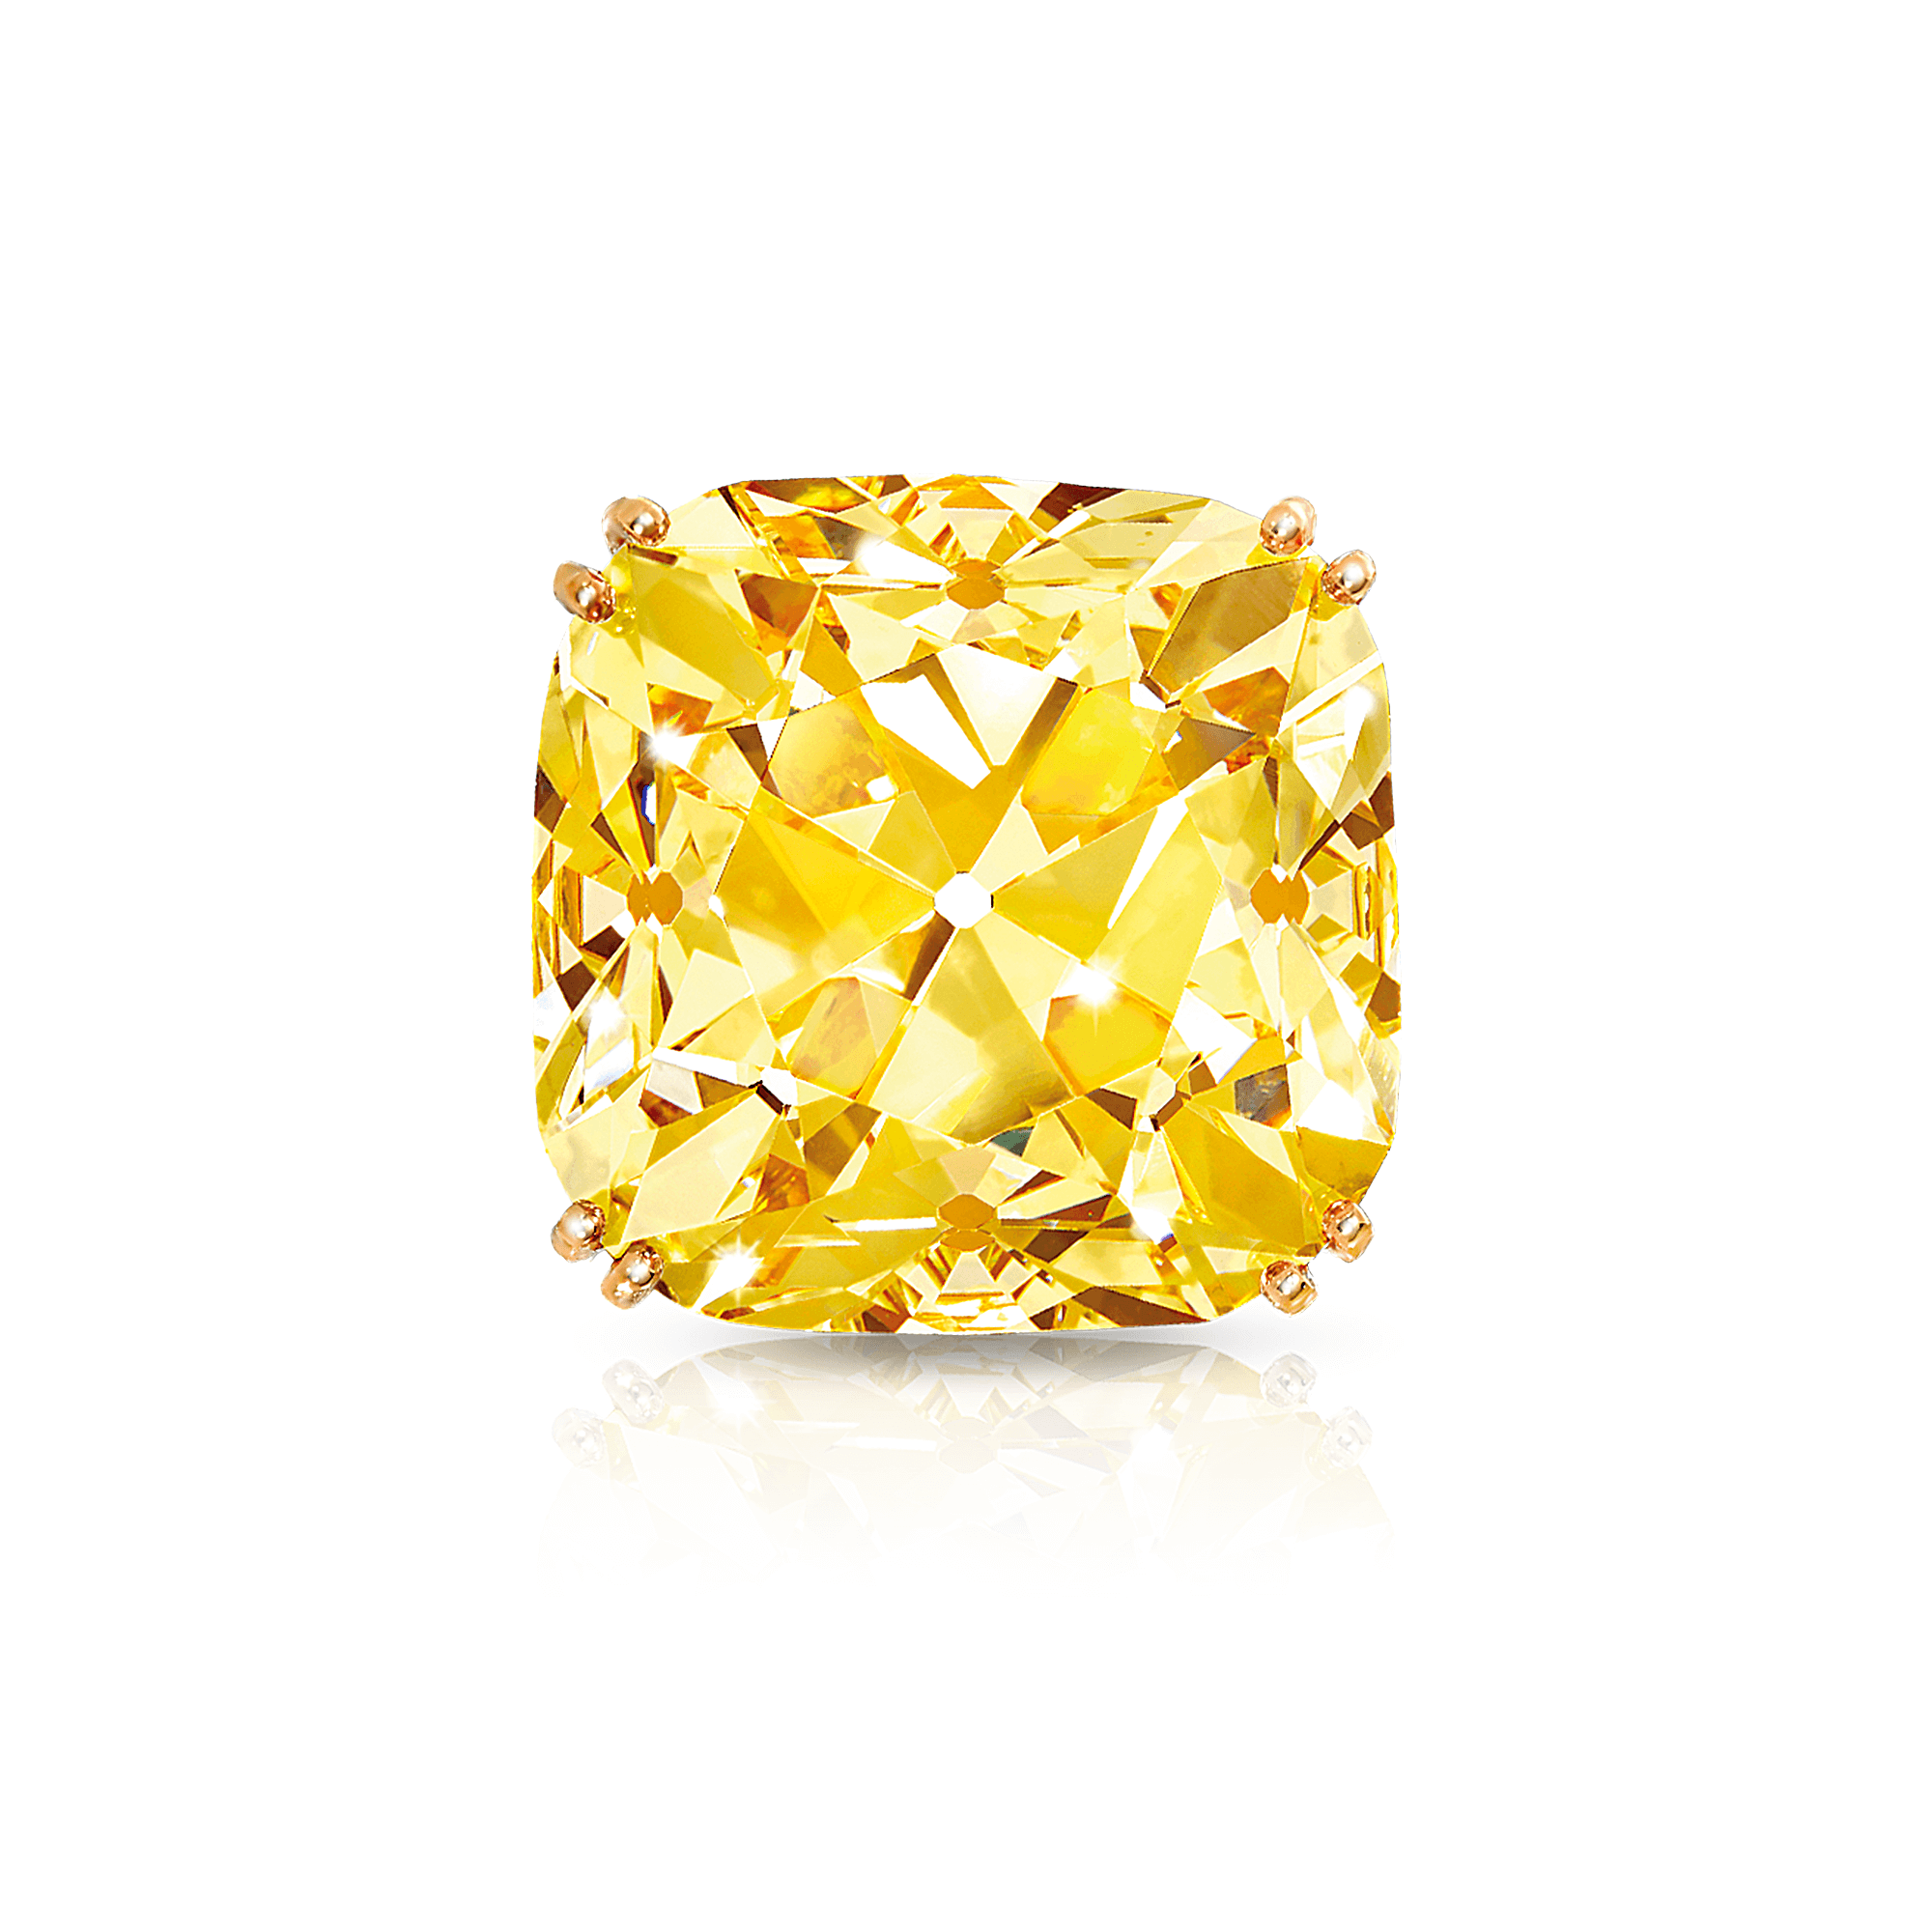 The Graff Sunflower famous Yellow Diamond from Graff